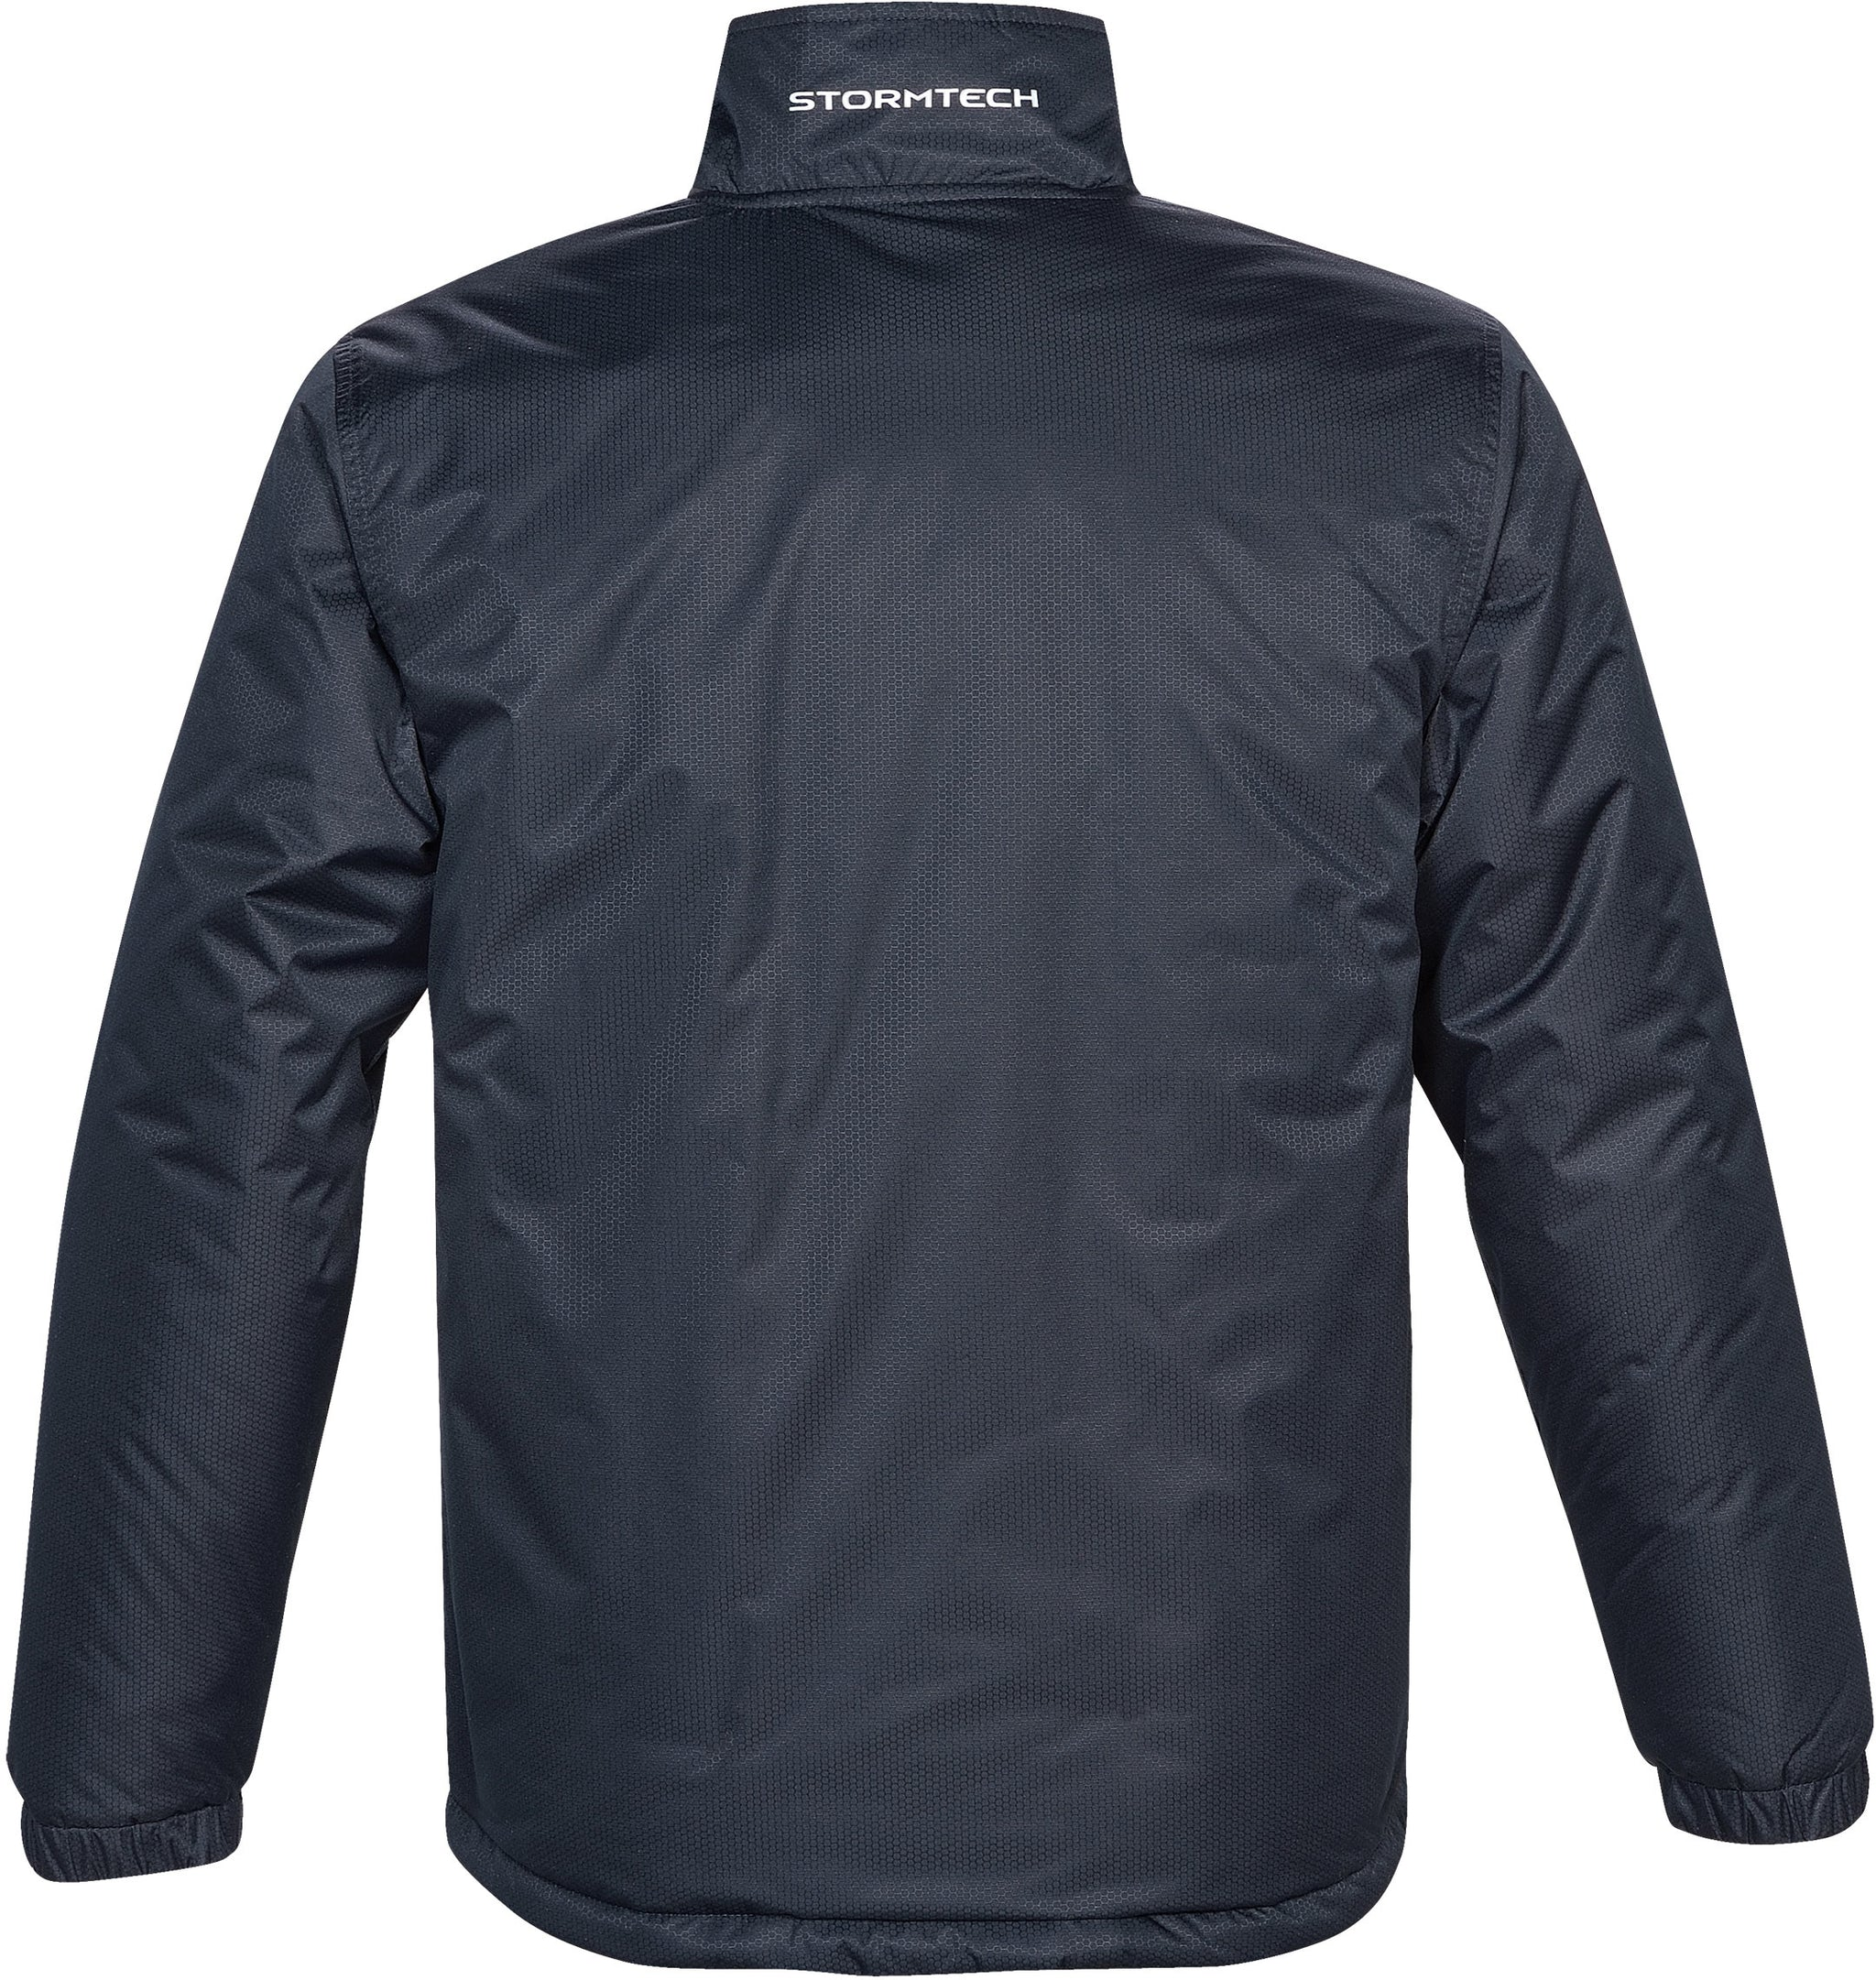 STORMTECH MEN'S AXIS THERMAL SHELL JACKET